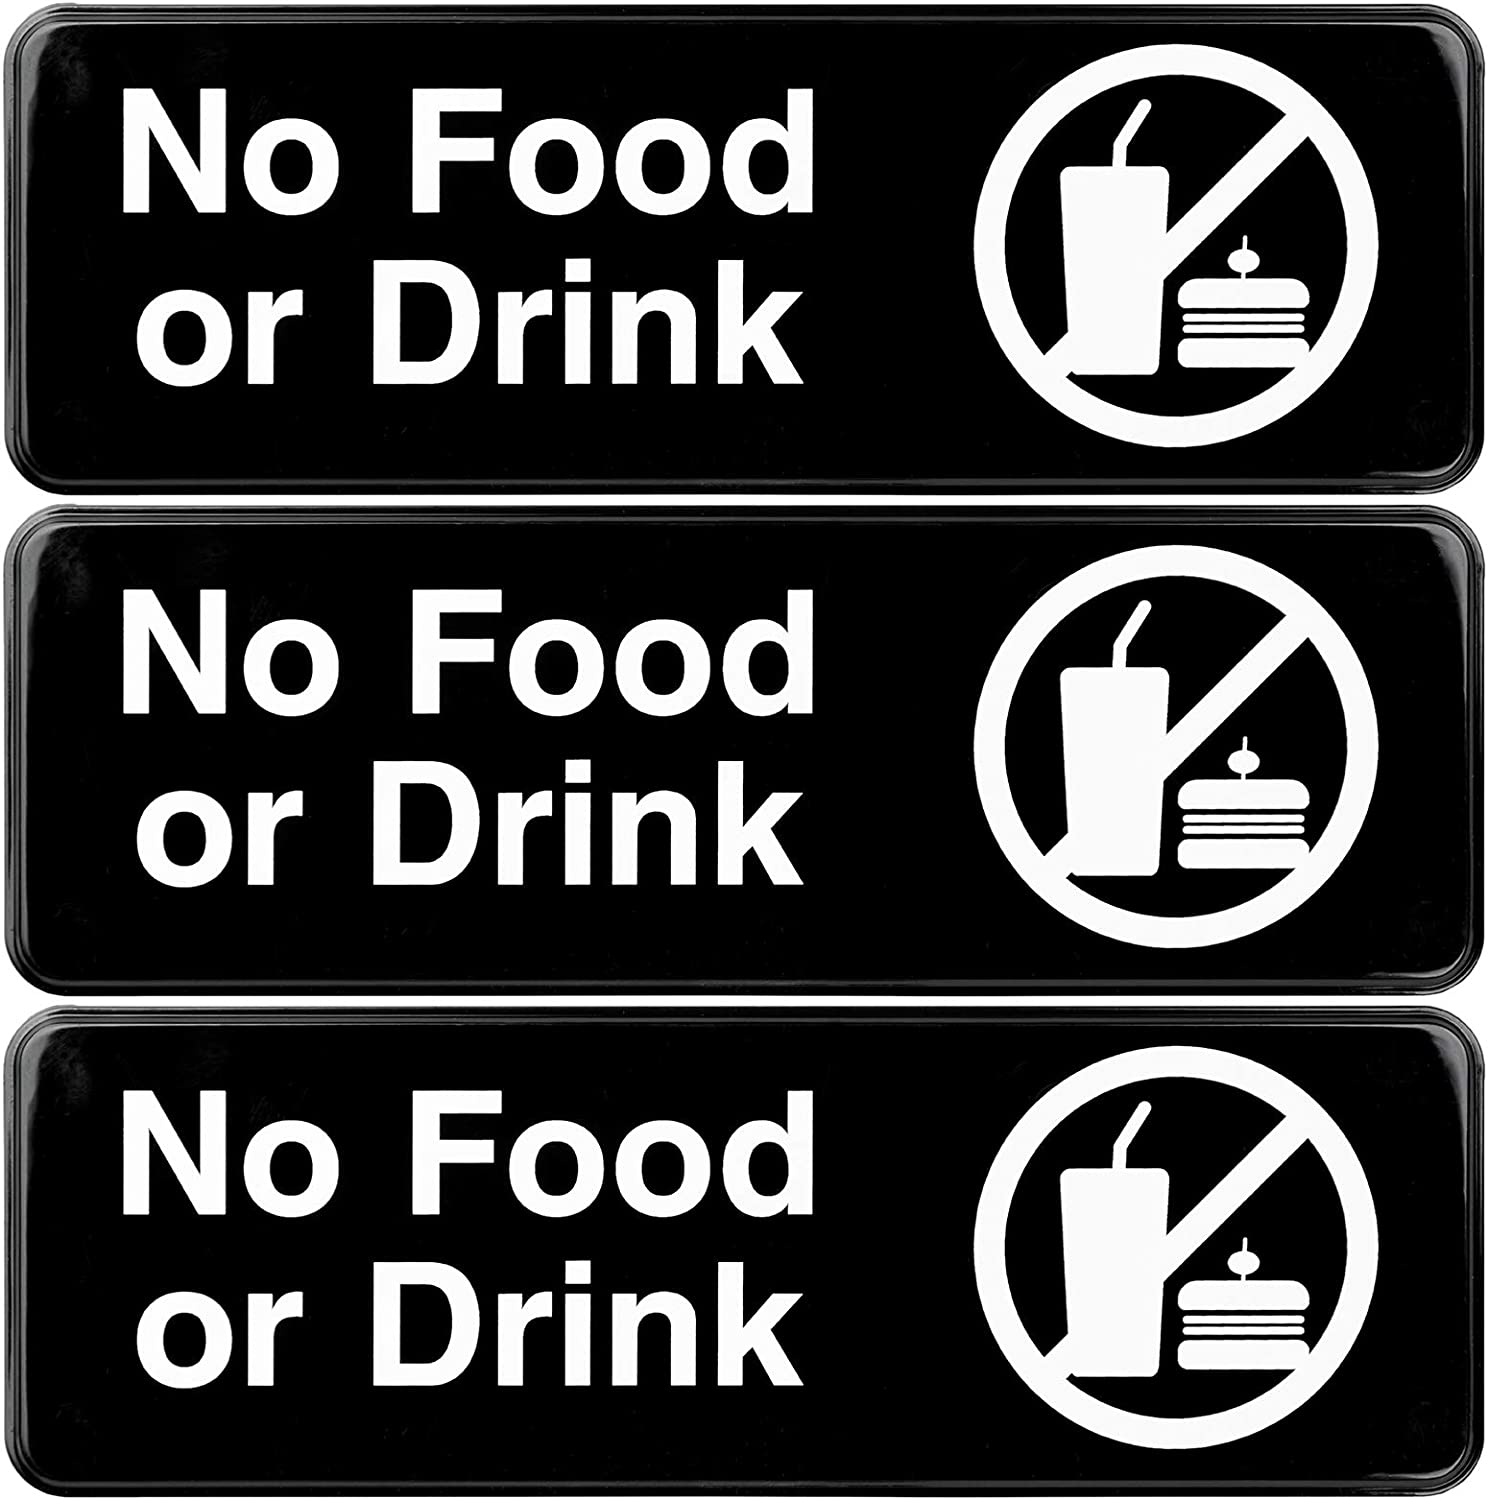 No Food or Drink Sign: Easy Mount Plastic Quantity limited 1 year warranty Sign Informative to wi